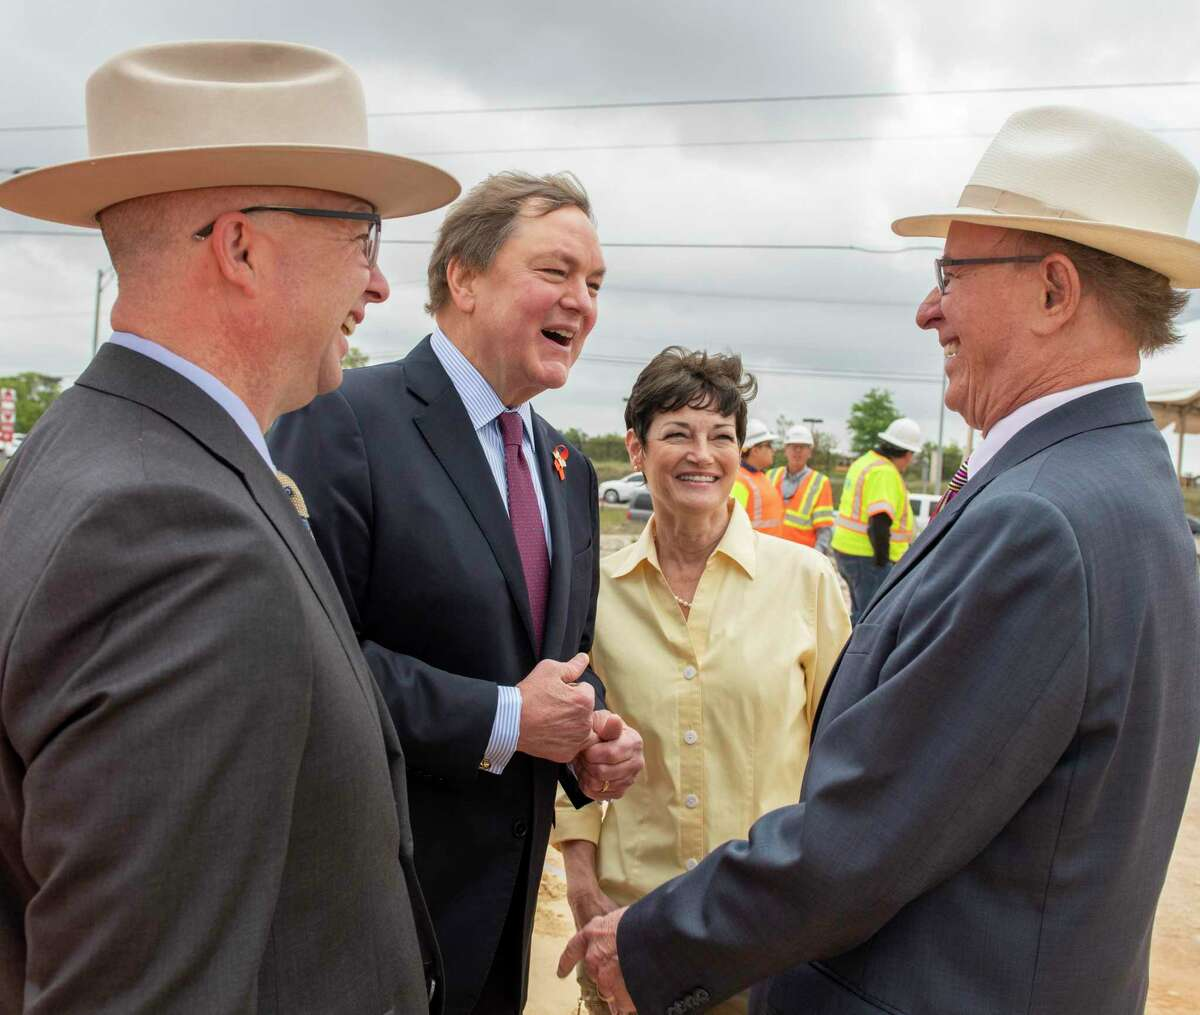 Bexar County Commissioner Kevin Wolff, from left, Texas Transportation Commission Chairman J. Bruce Bugg Jr., state Sen. Donna Campbell and Bexar County Judge Nelson Wolff talk during a March 2019 groundbreaking on a U.S. 281 construction project.